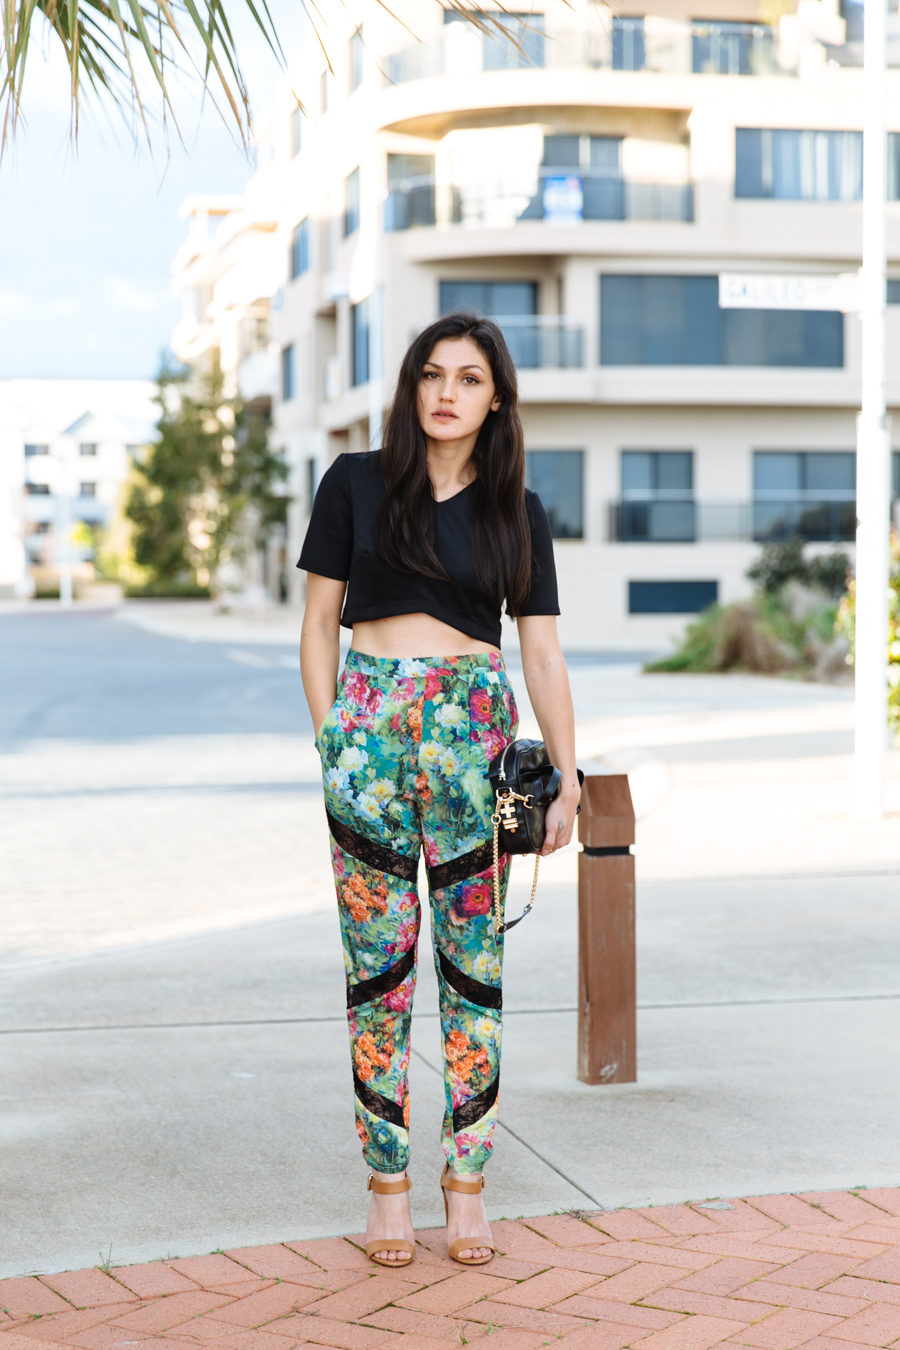 Floral statement pants by Elliatt. Asos crop top tee. Zara sandals. Dylan Kain bag.